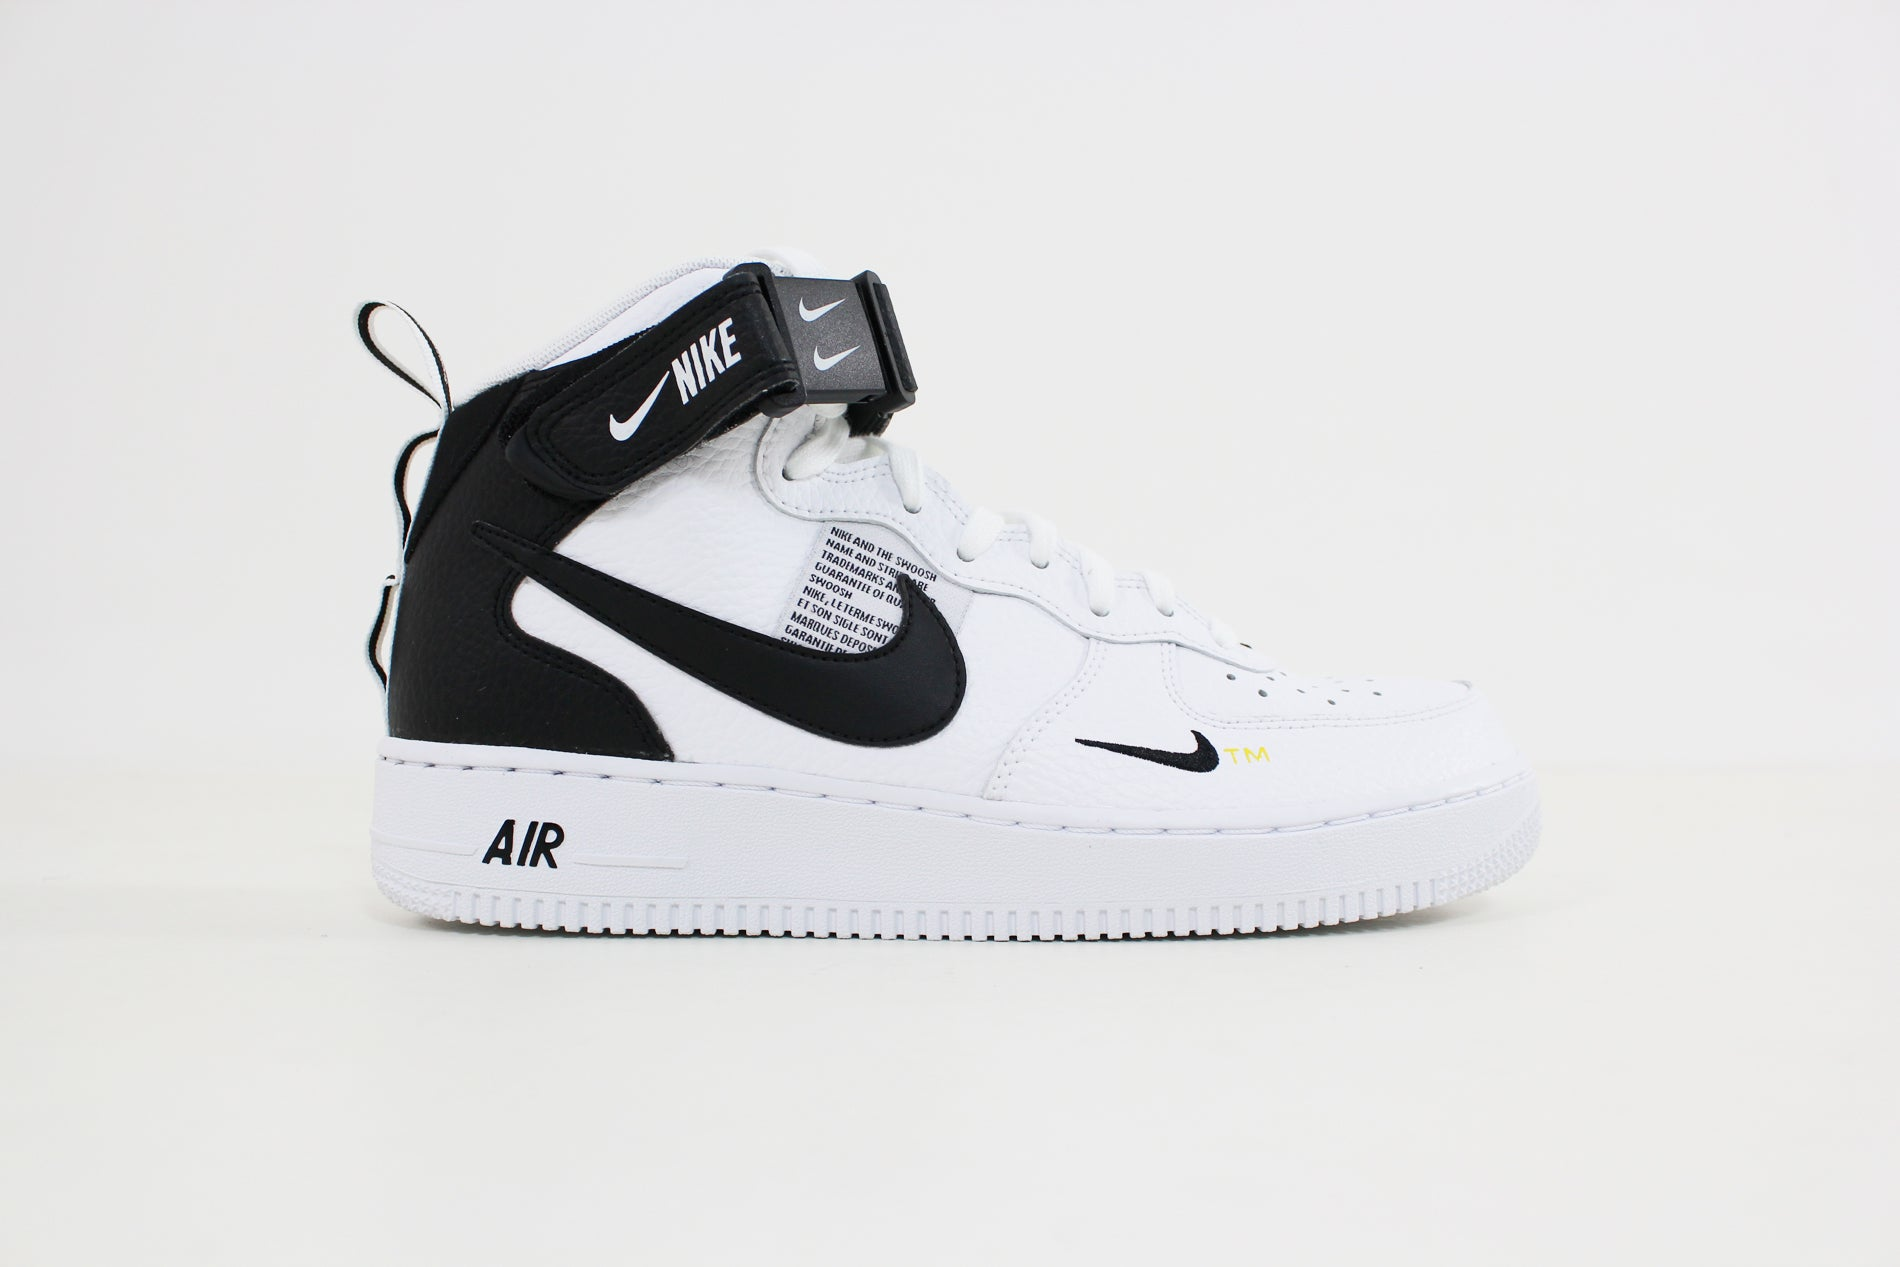 Nike - Air Force 1 Mid 07 LV8 (White/Black Tour Yellow) 804609-103